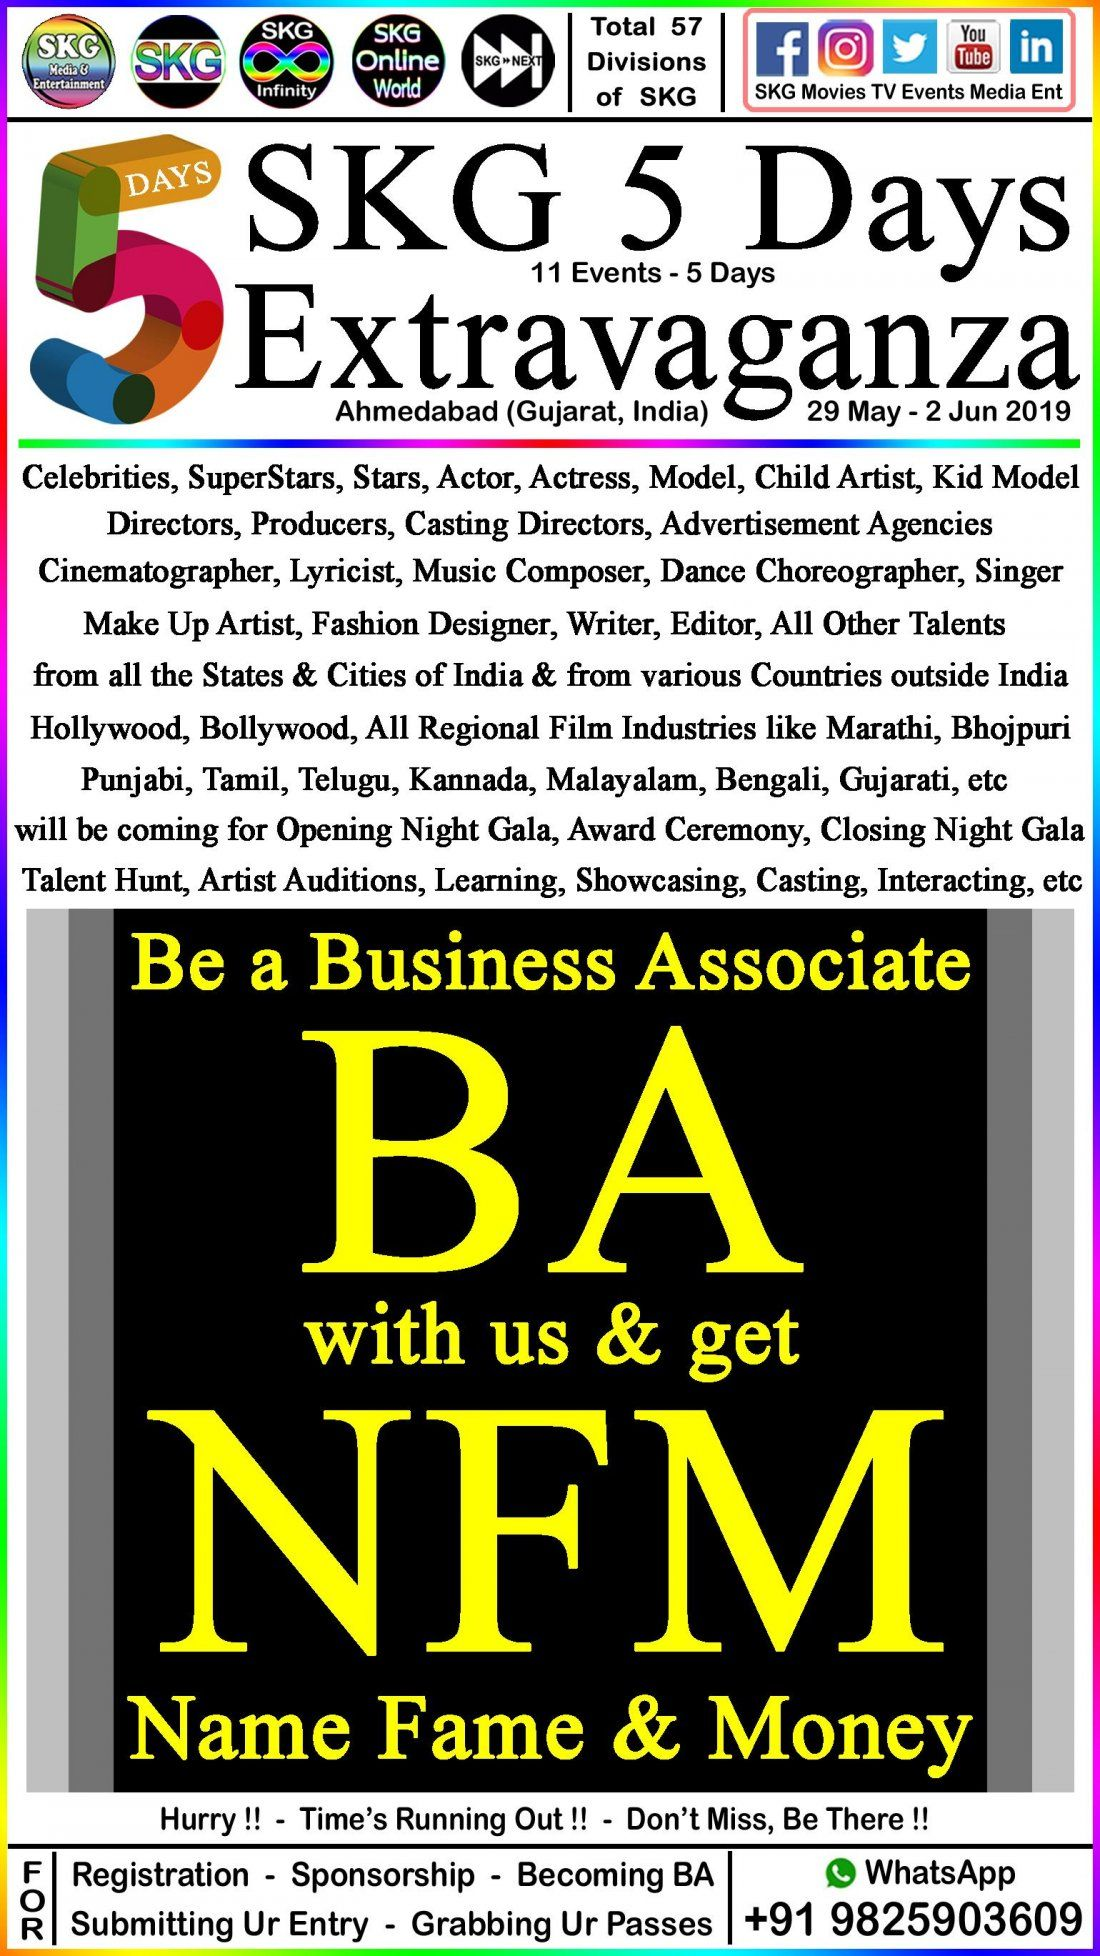 Become a BA (Business Associate) with us & get NFM (Name Fame & Money)